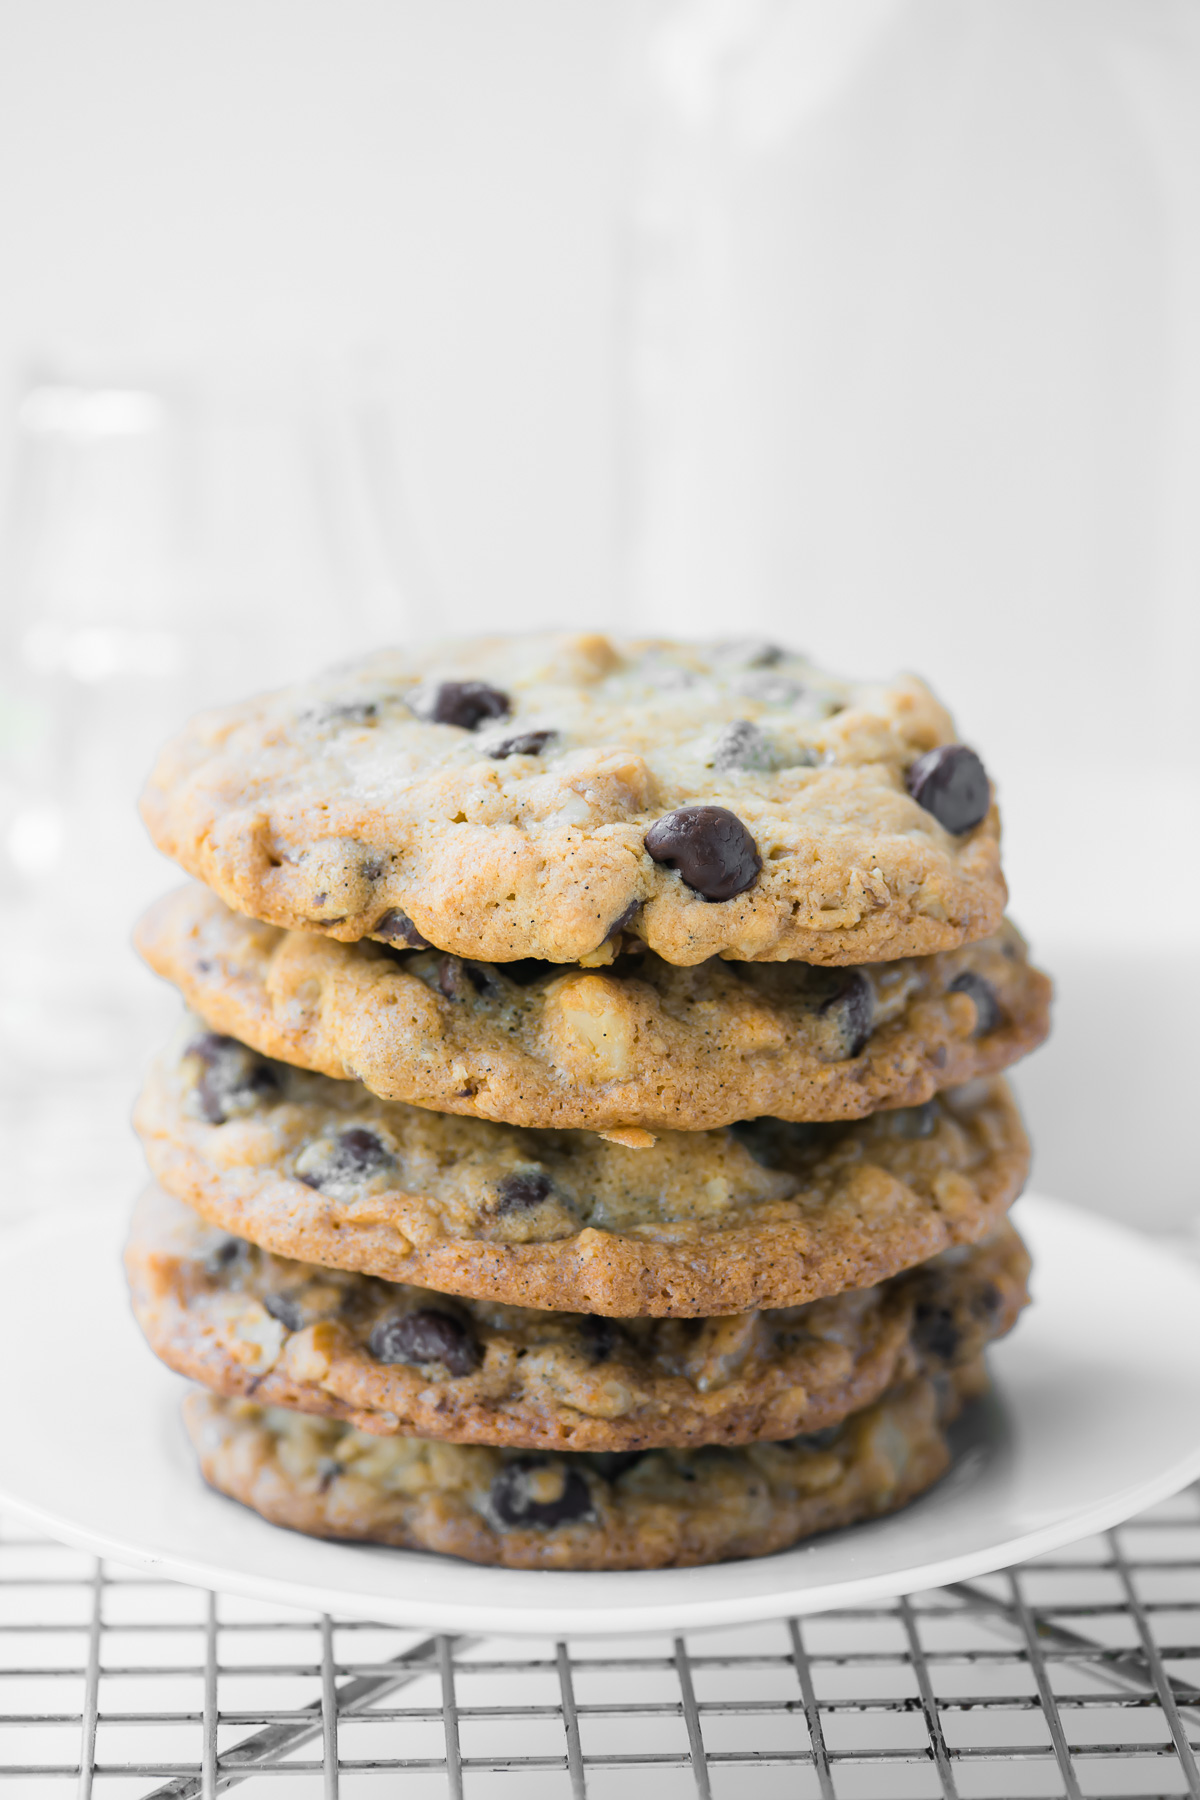 DoubleTree chocolate chip cookies, stacked